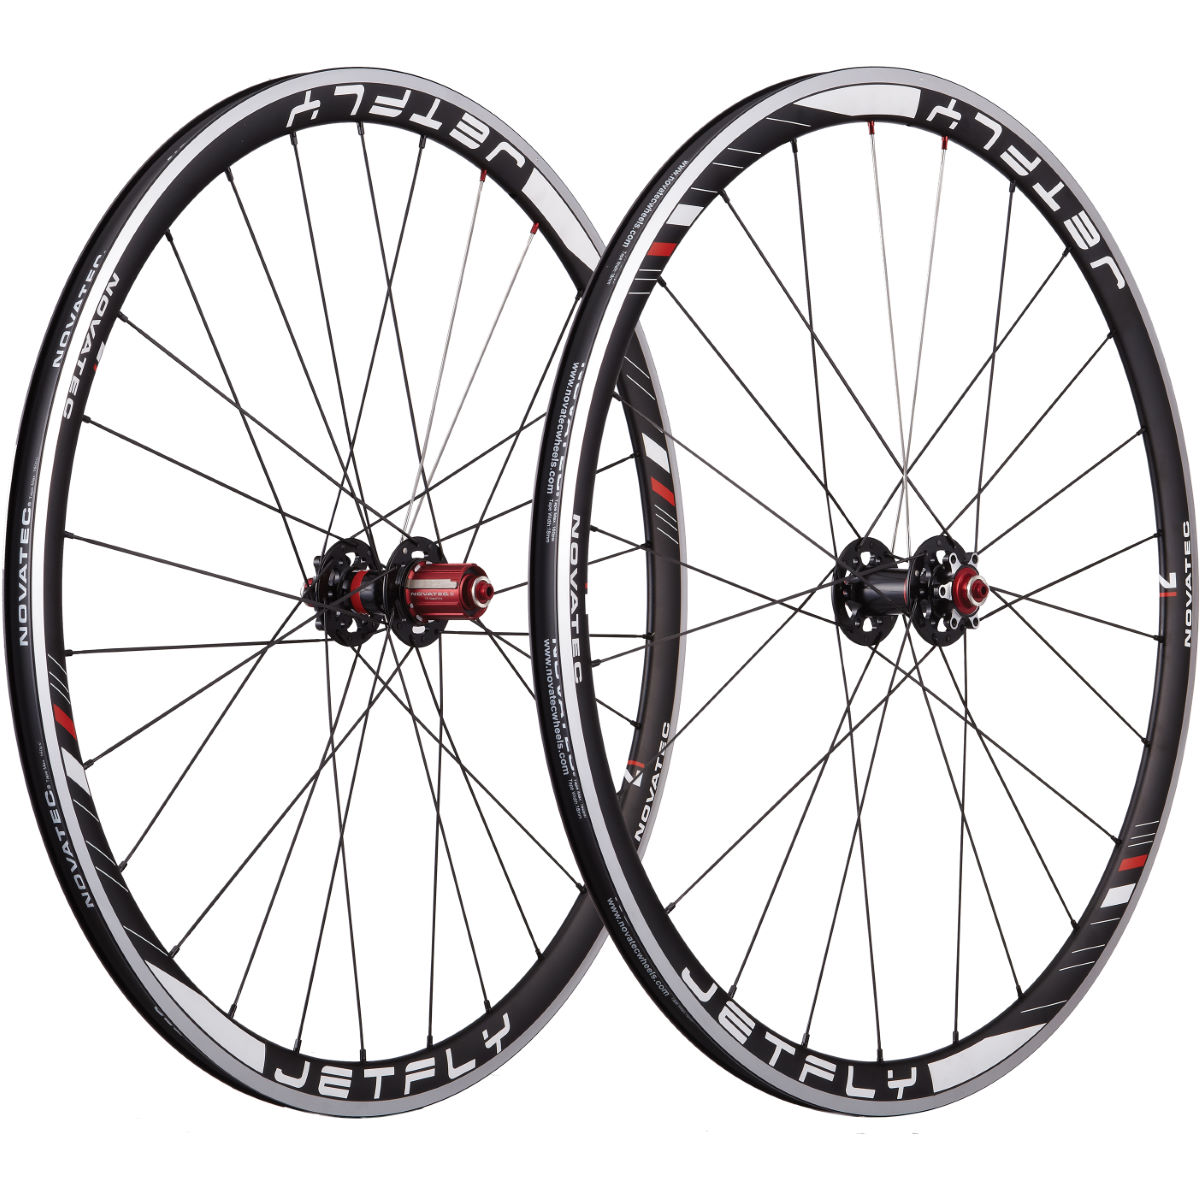 Novatec Jetfly Alloy Clincher Disc Brake Wheelset Performance Wheels